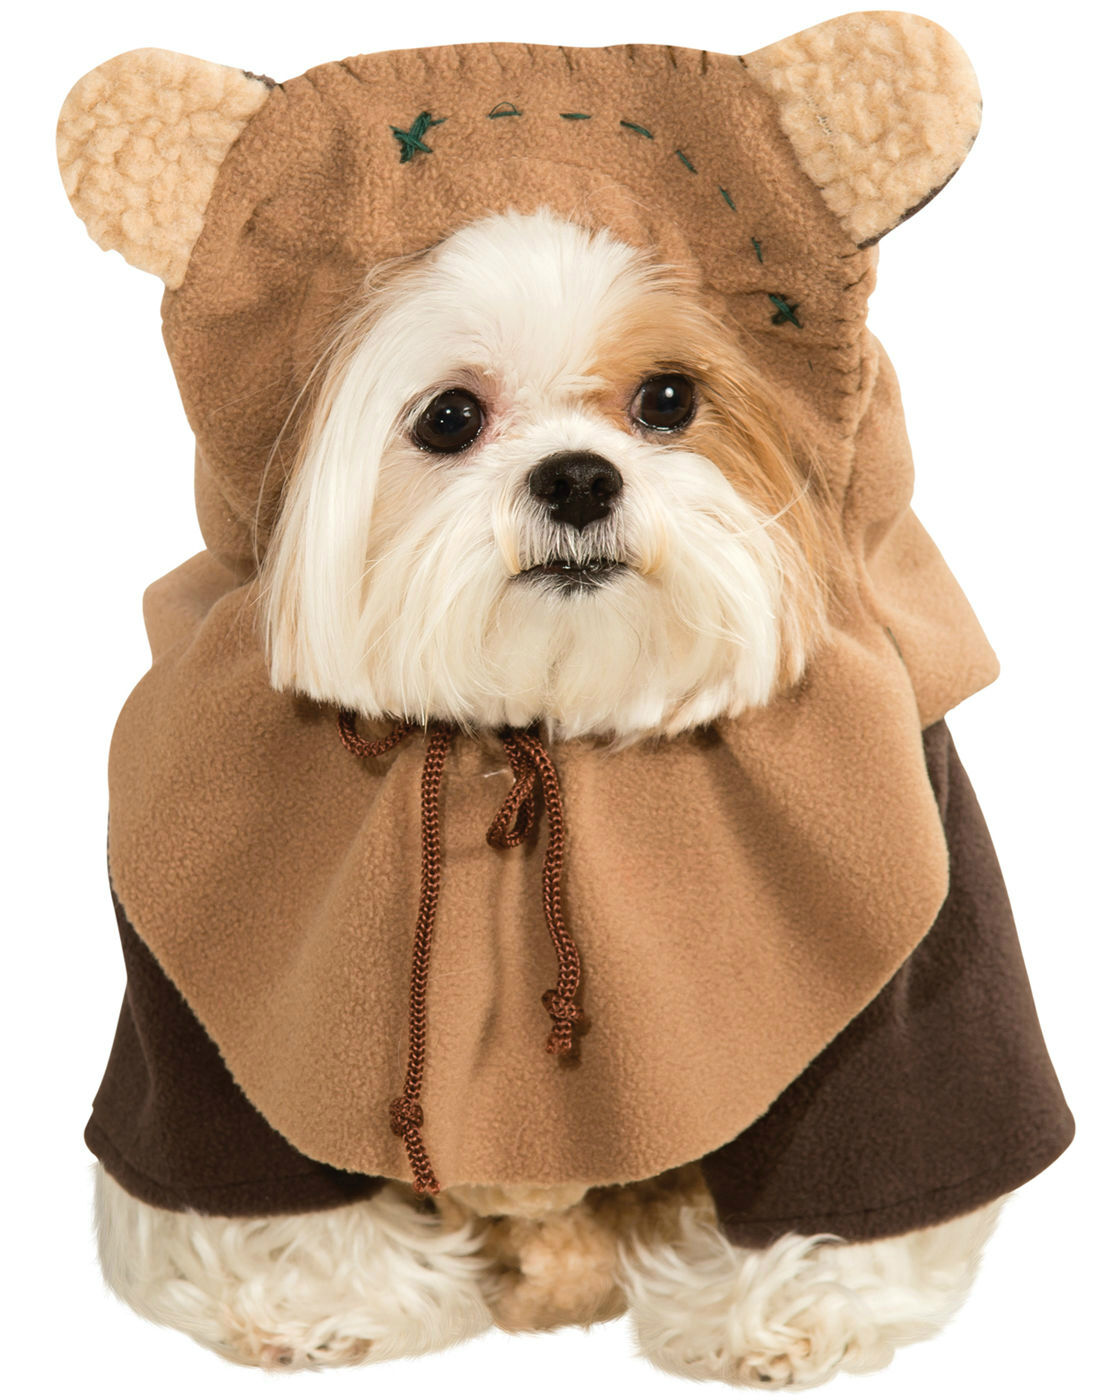 Black dog t shirt ebay - Star Wars Ewok Pet Costume